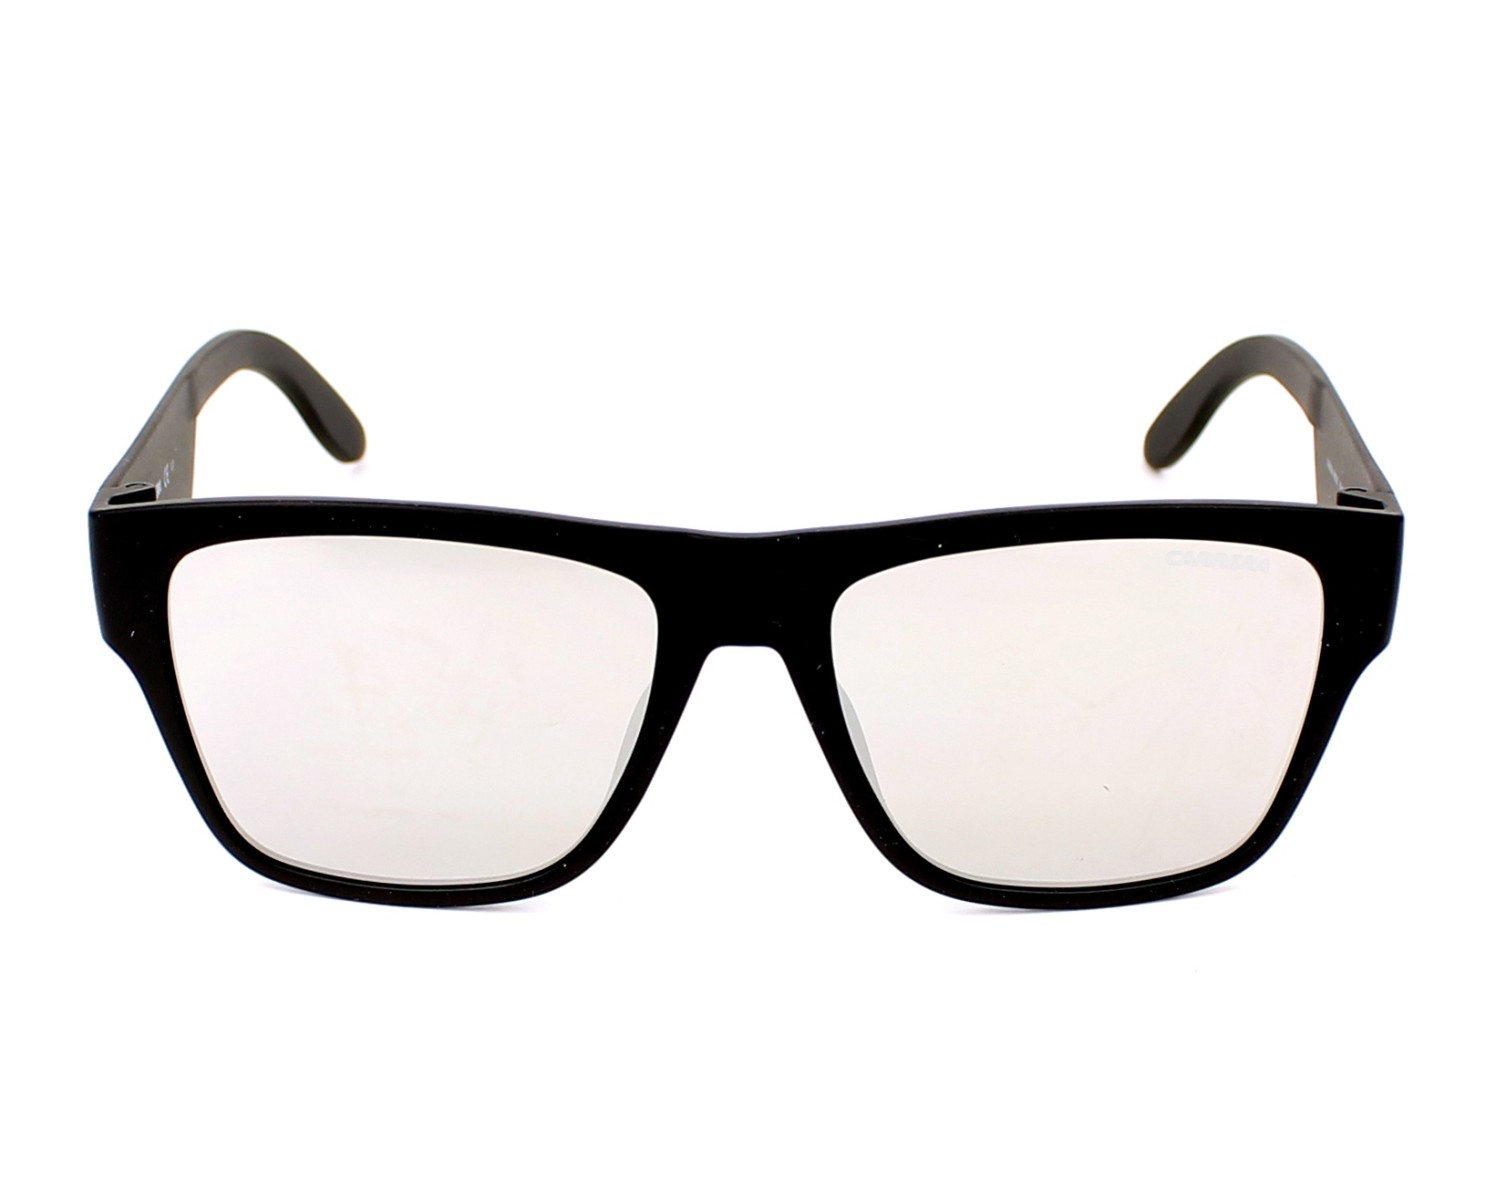 Sunglasses Carrera 5002-ST DL5 SS - Black front view 804afffcbe70